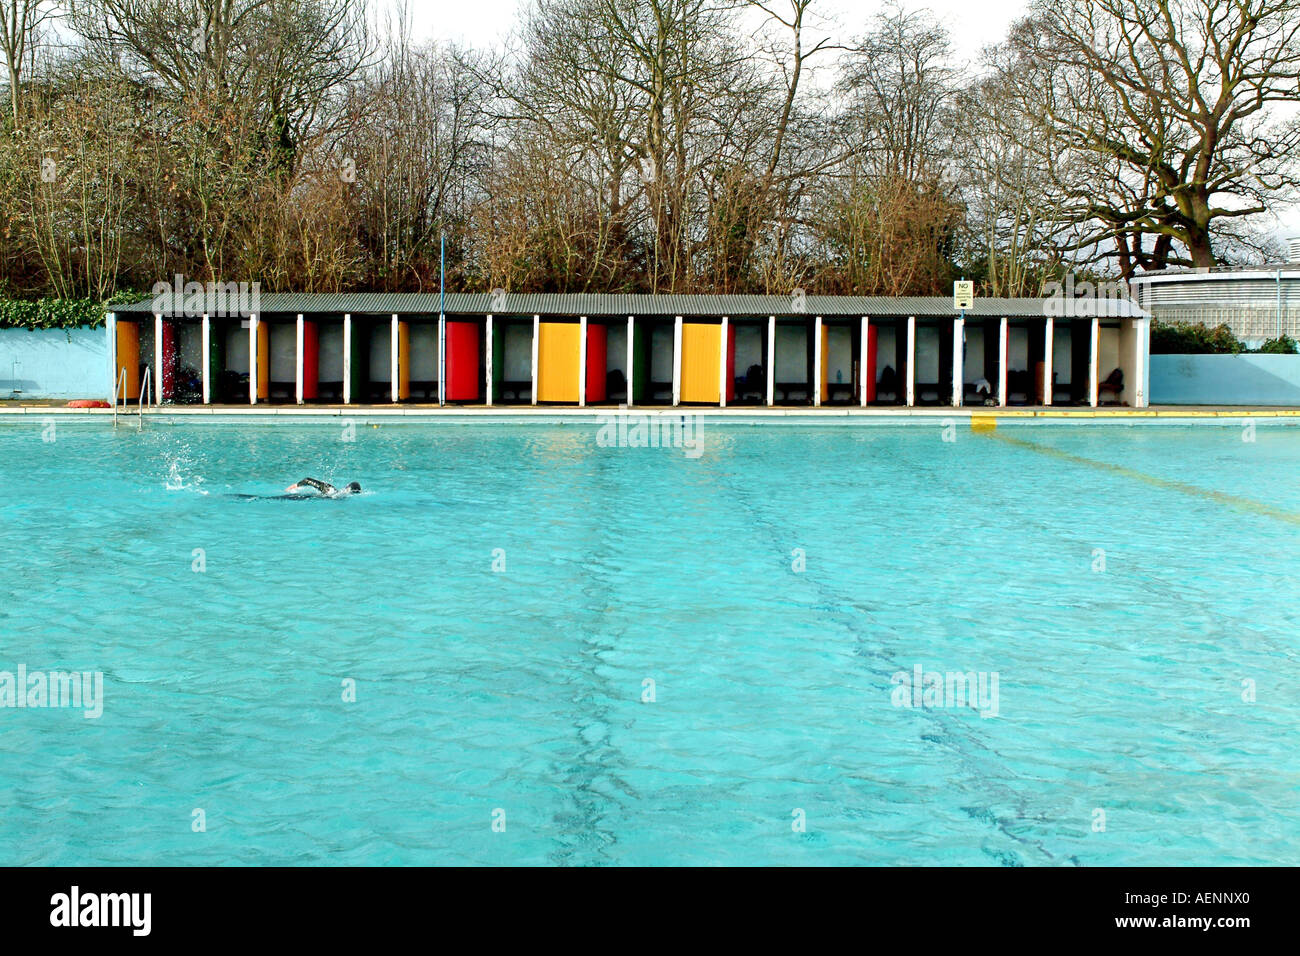 Tooting Bec Lido In South London Is The Largest Open Air Pool In Stock Photo Royalty Free Image